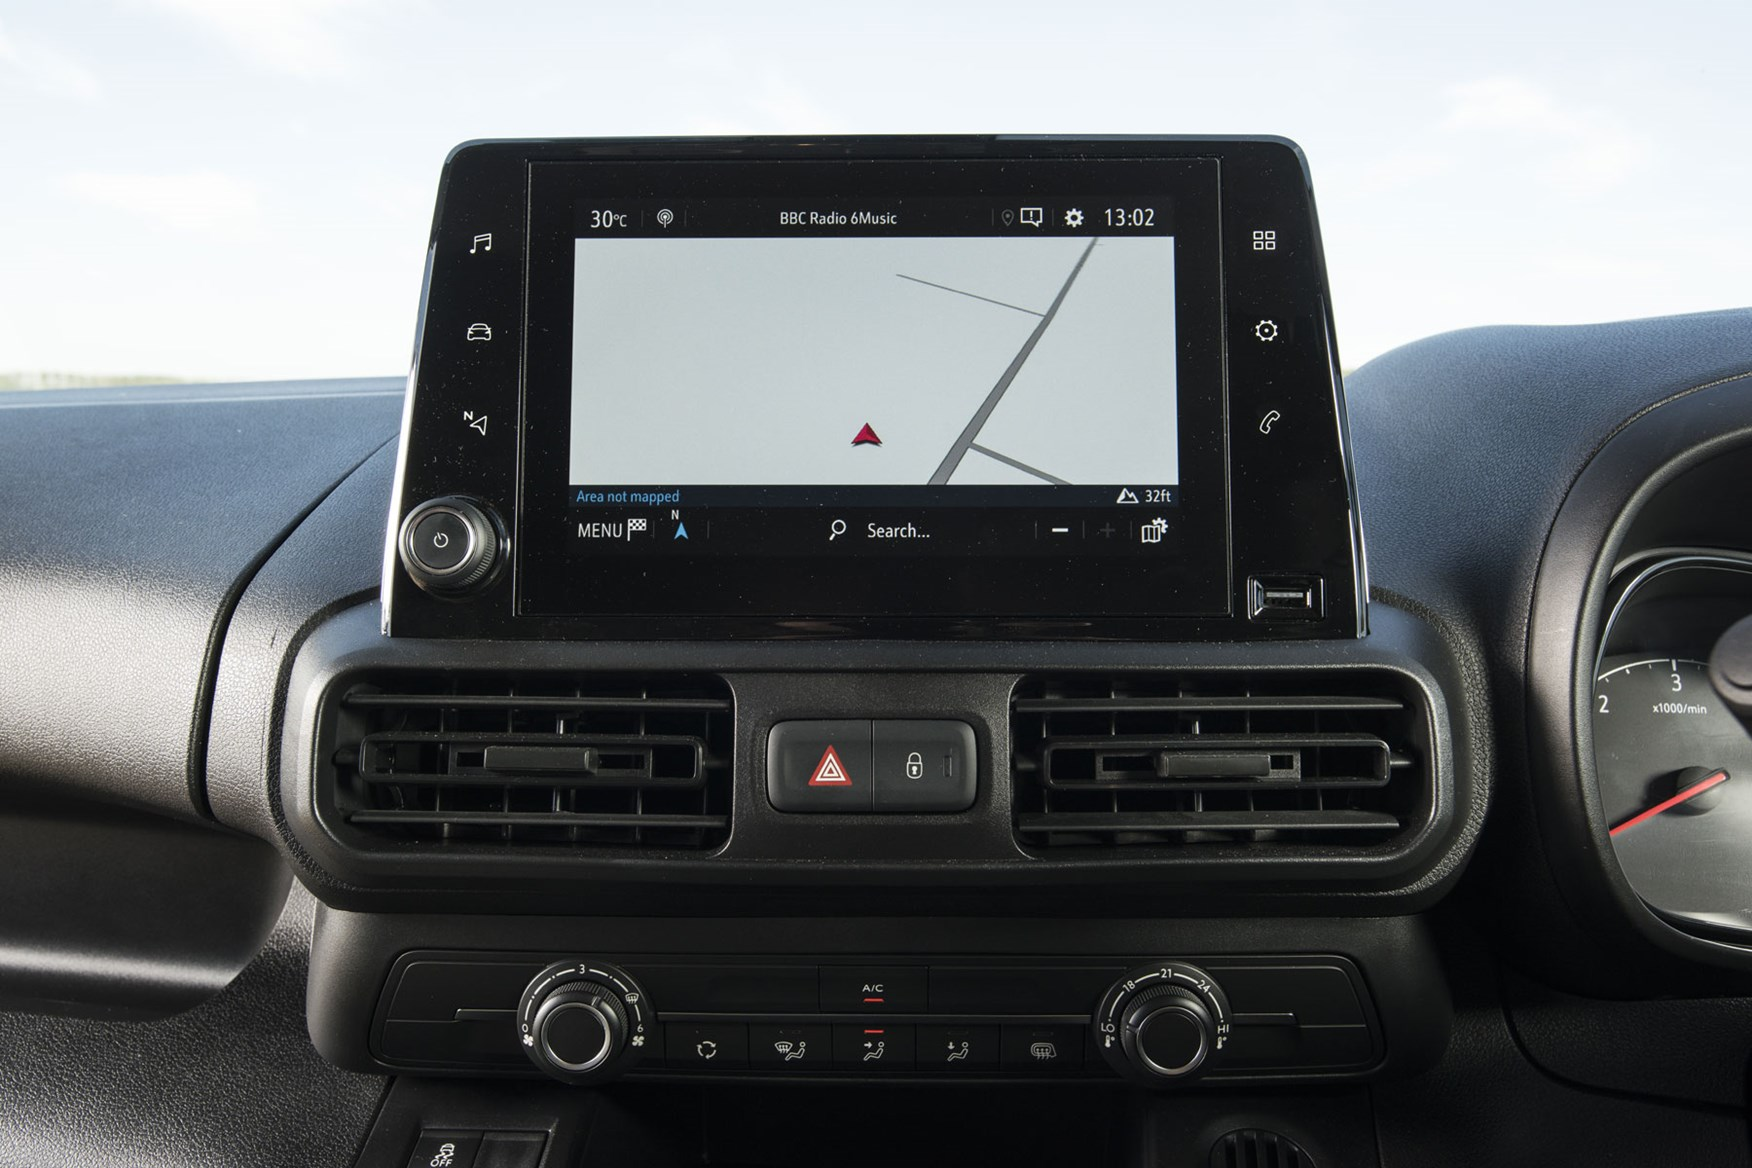 Vauxhall Combo Cargo review - 2019 model, cab interior, infotainment screen